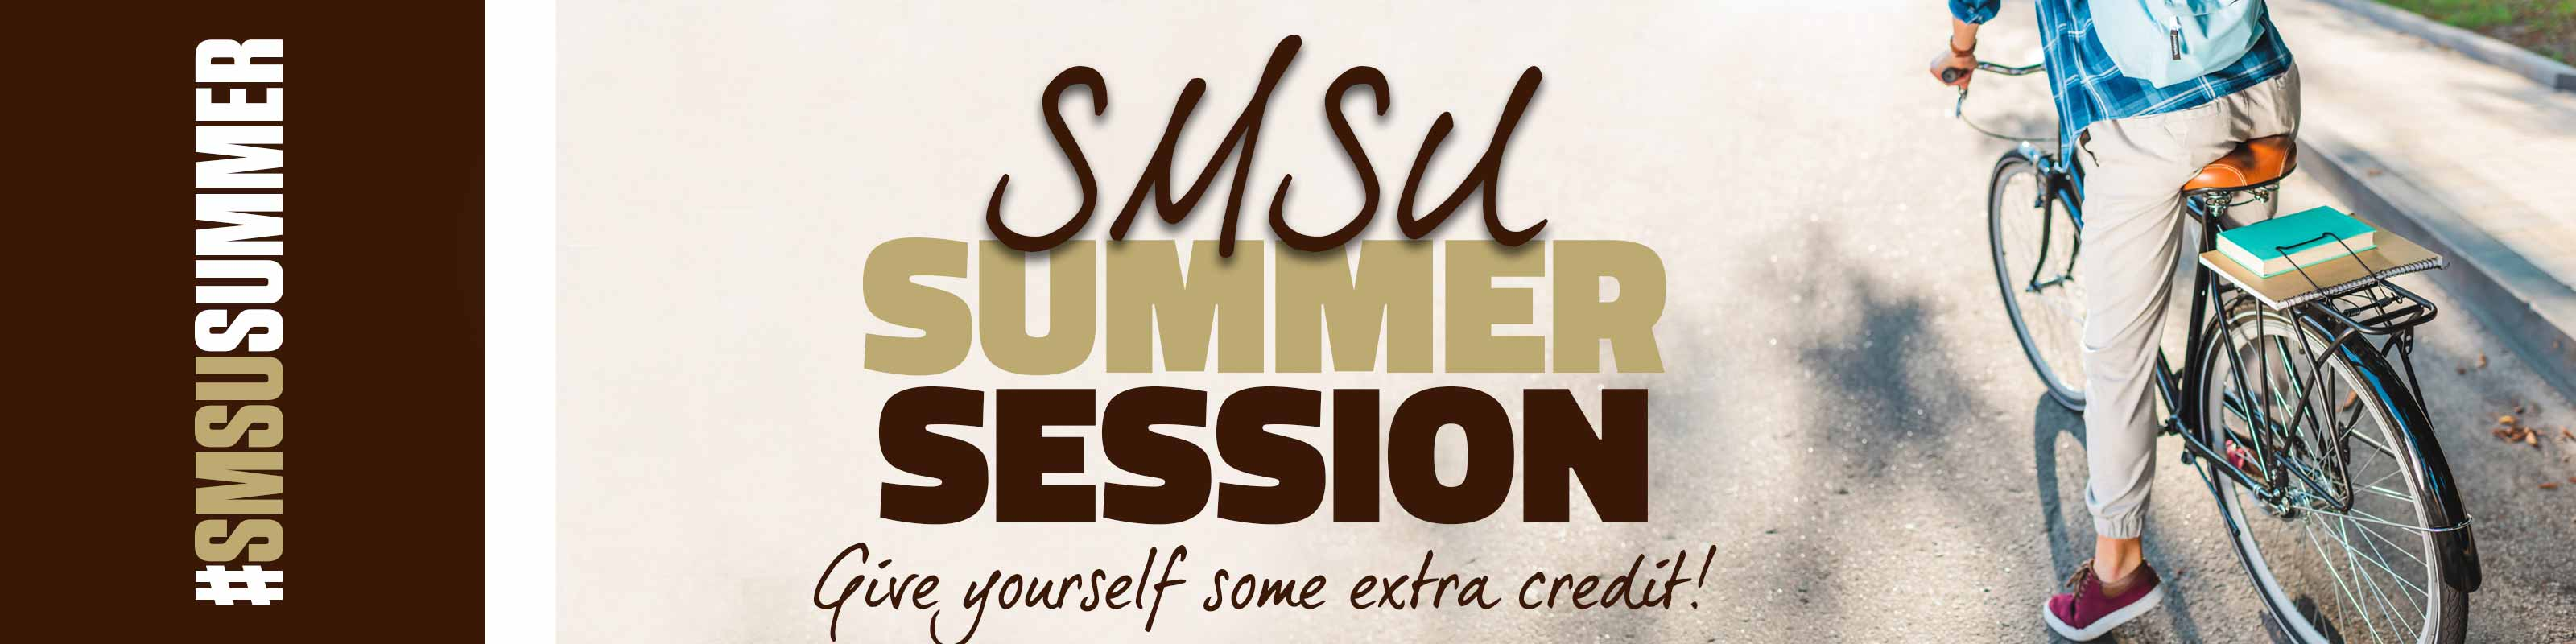 SMSU Summer Session - Give yourself some extra credit! - Click for more info